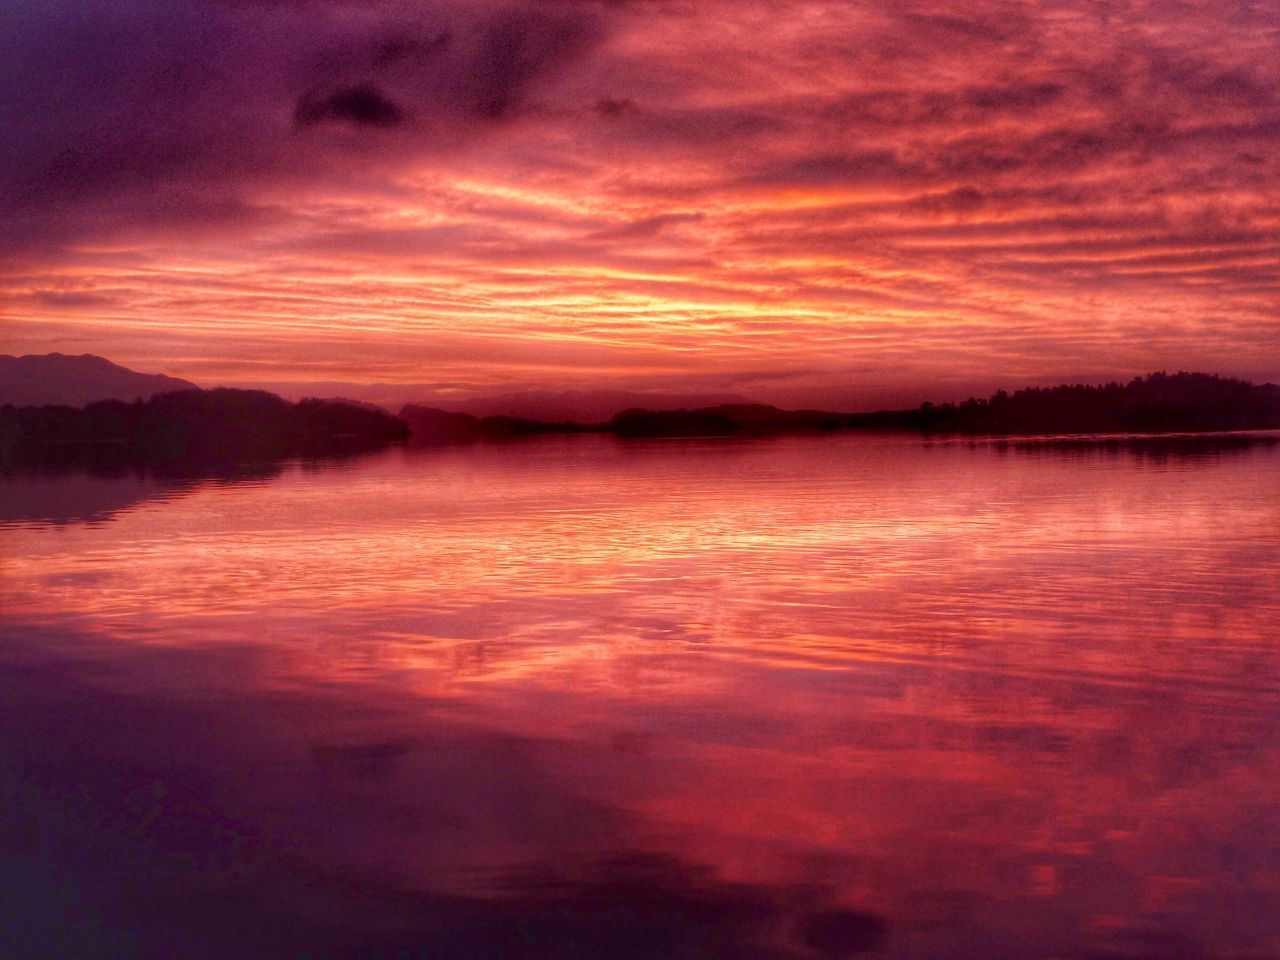 Sunset Beauty In Nature Nature Reflection Water Scenics Sky Tranquil Scene Cloud - Sky Orange Color Tranquility Dramatic Sky No People Idyllic Outdoors Scotland LochLomond Sunrise_sunsets_aroundworld Travel Travel Photography Travel Destinations Moments